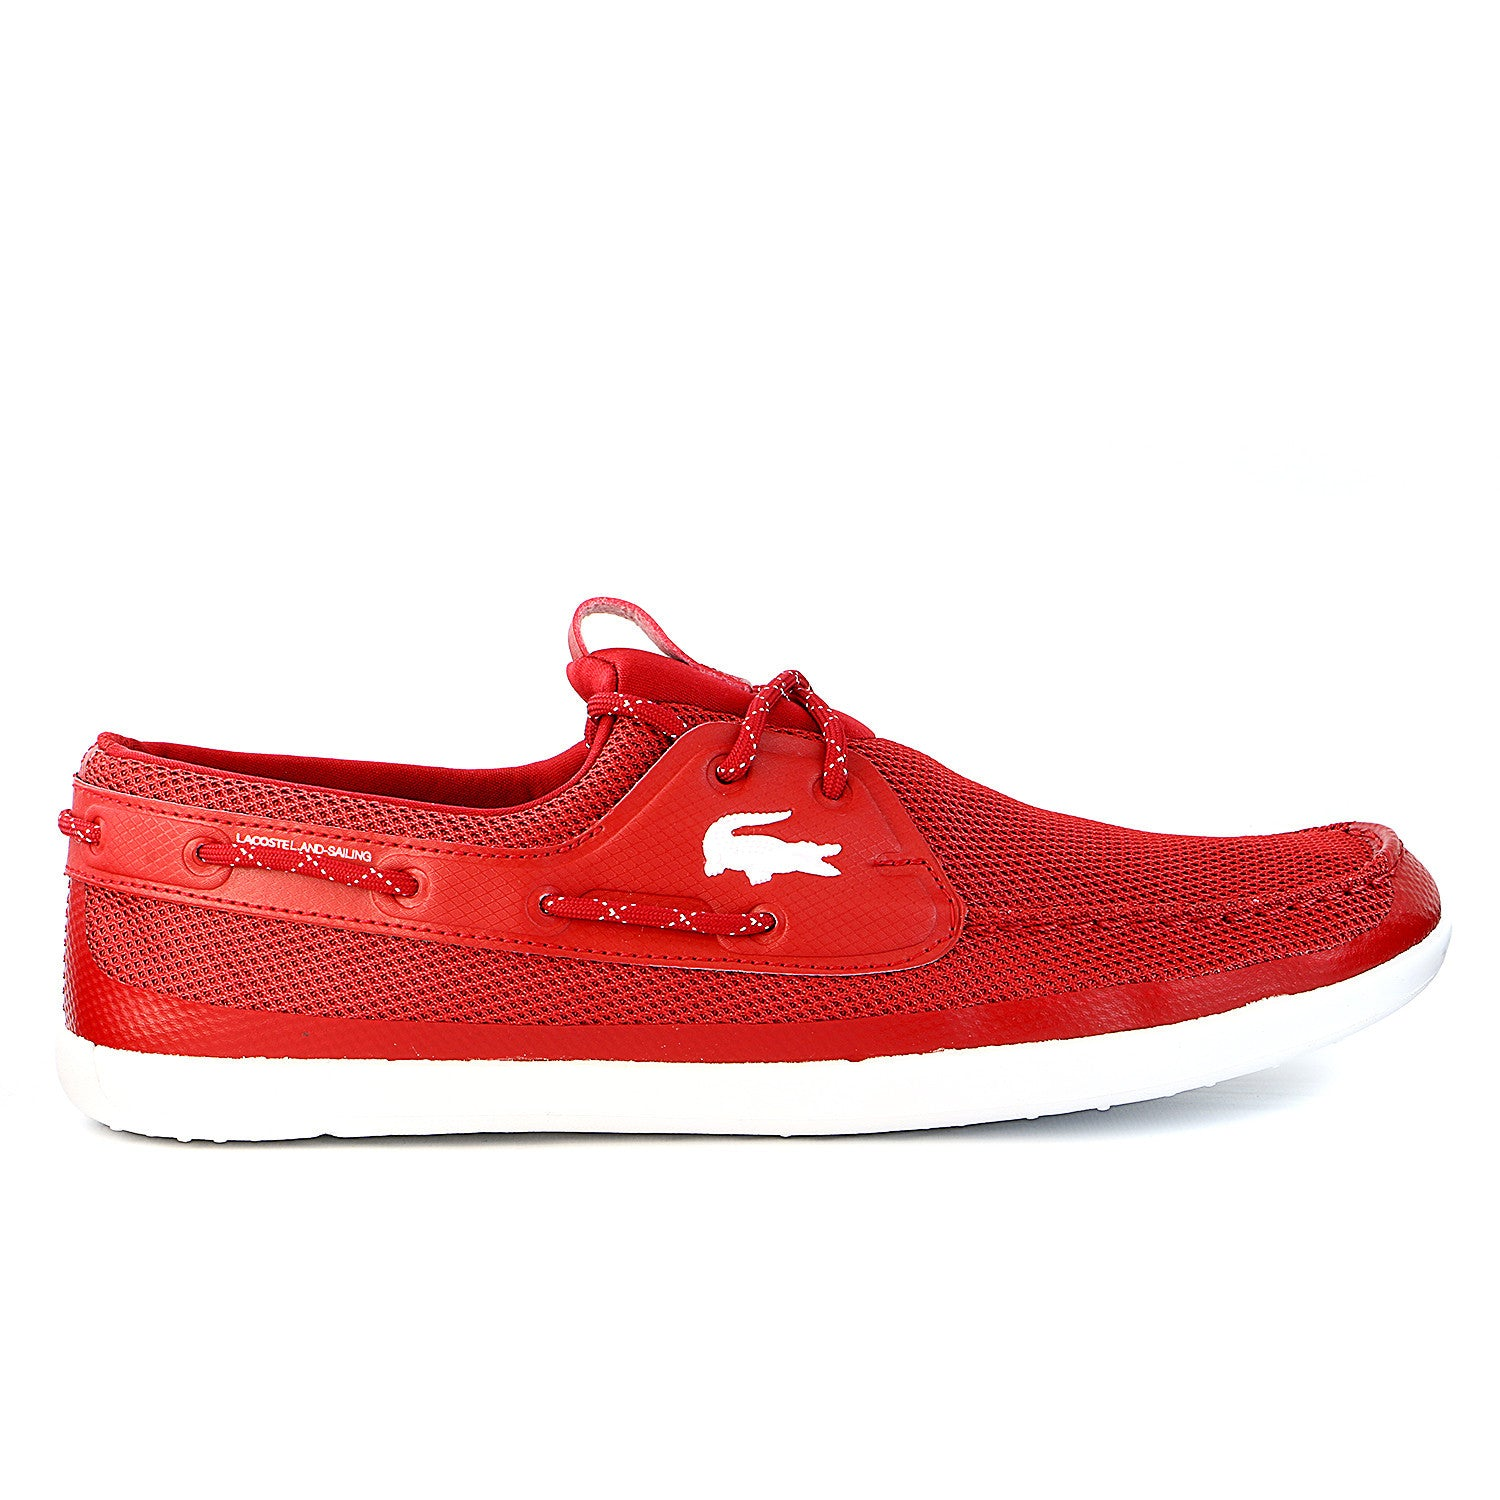 3aaf0791d3ac Lacoste Landsailing Boat Sneaker Shoes - Red - Mens - Shoplifestyle